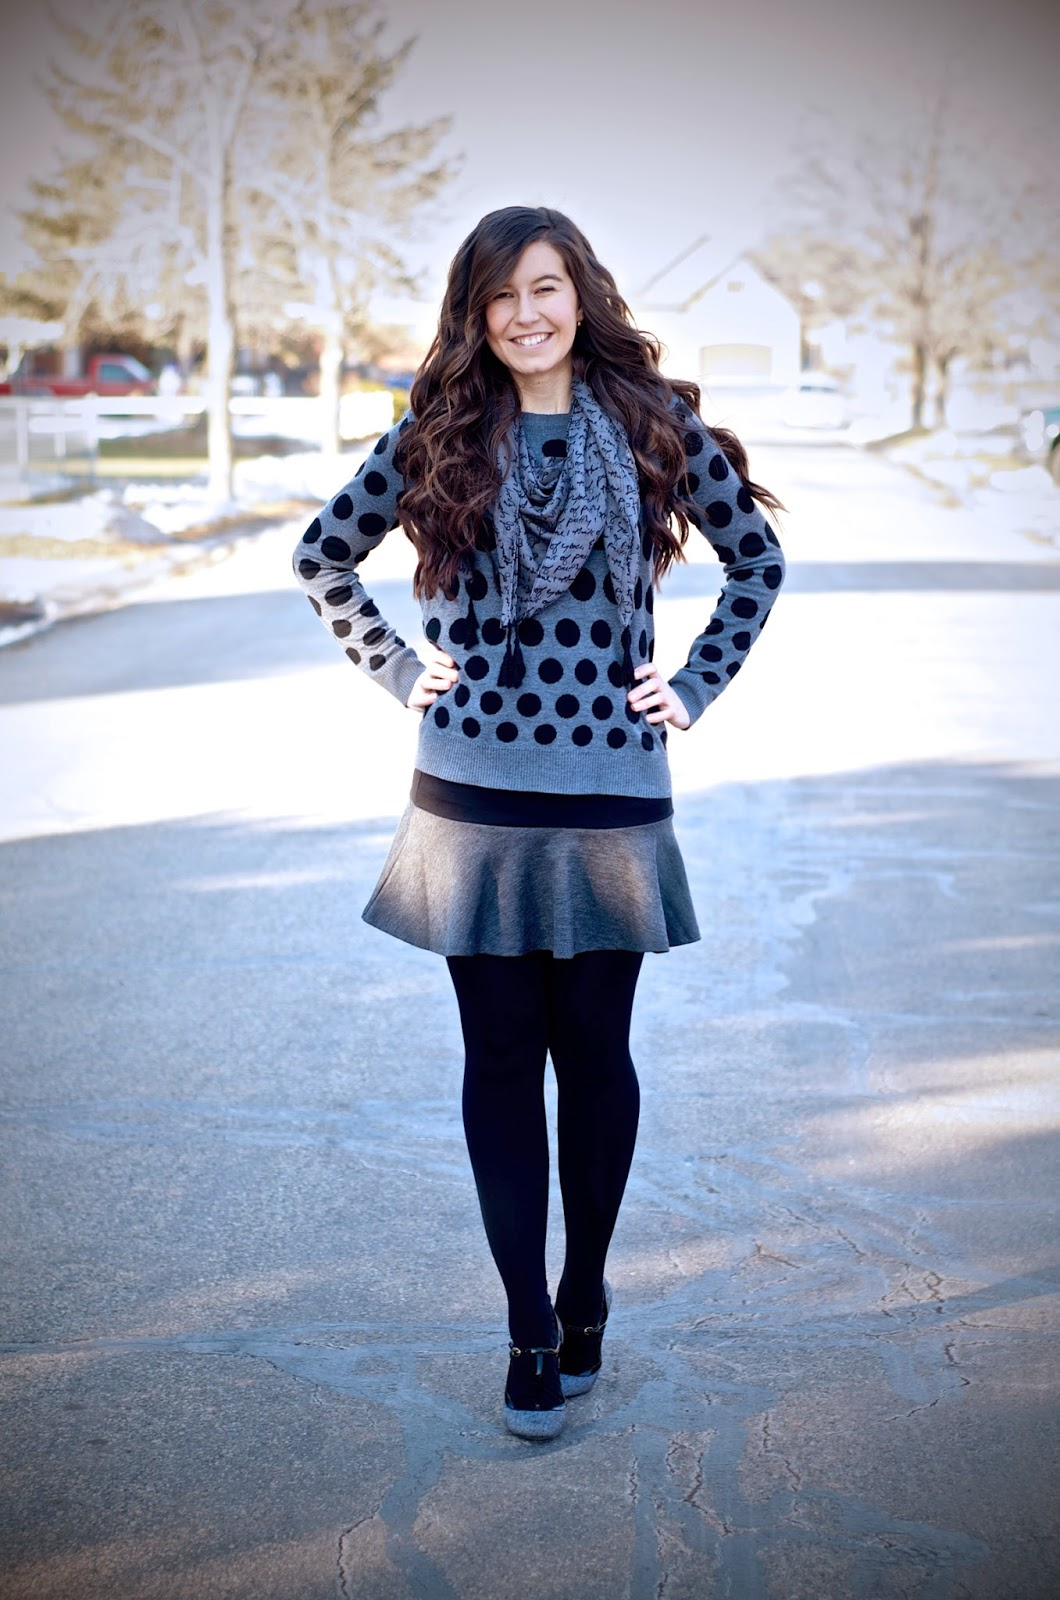 forever 21, kensie clothing, persun mall, polka dot, twirling photo, script scarf, polka dot sweater, black and grey skirt, black and grey outfit, payless, heels,